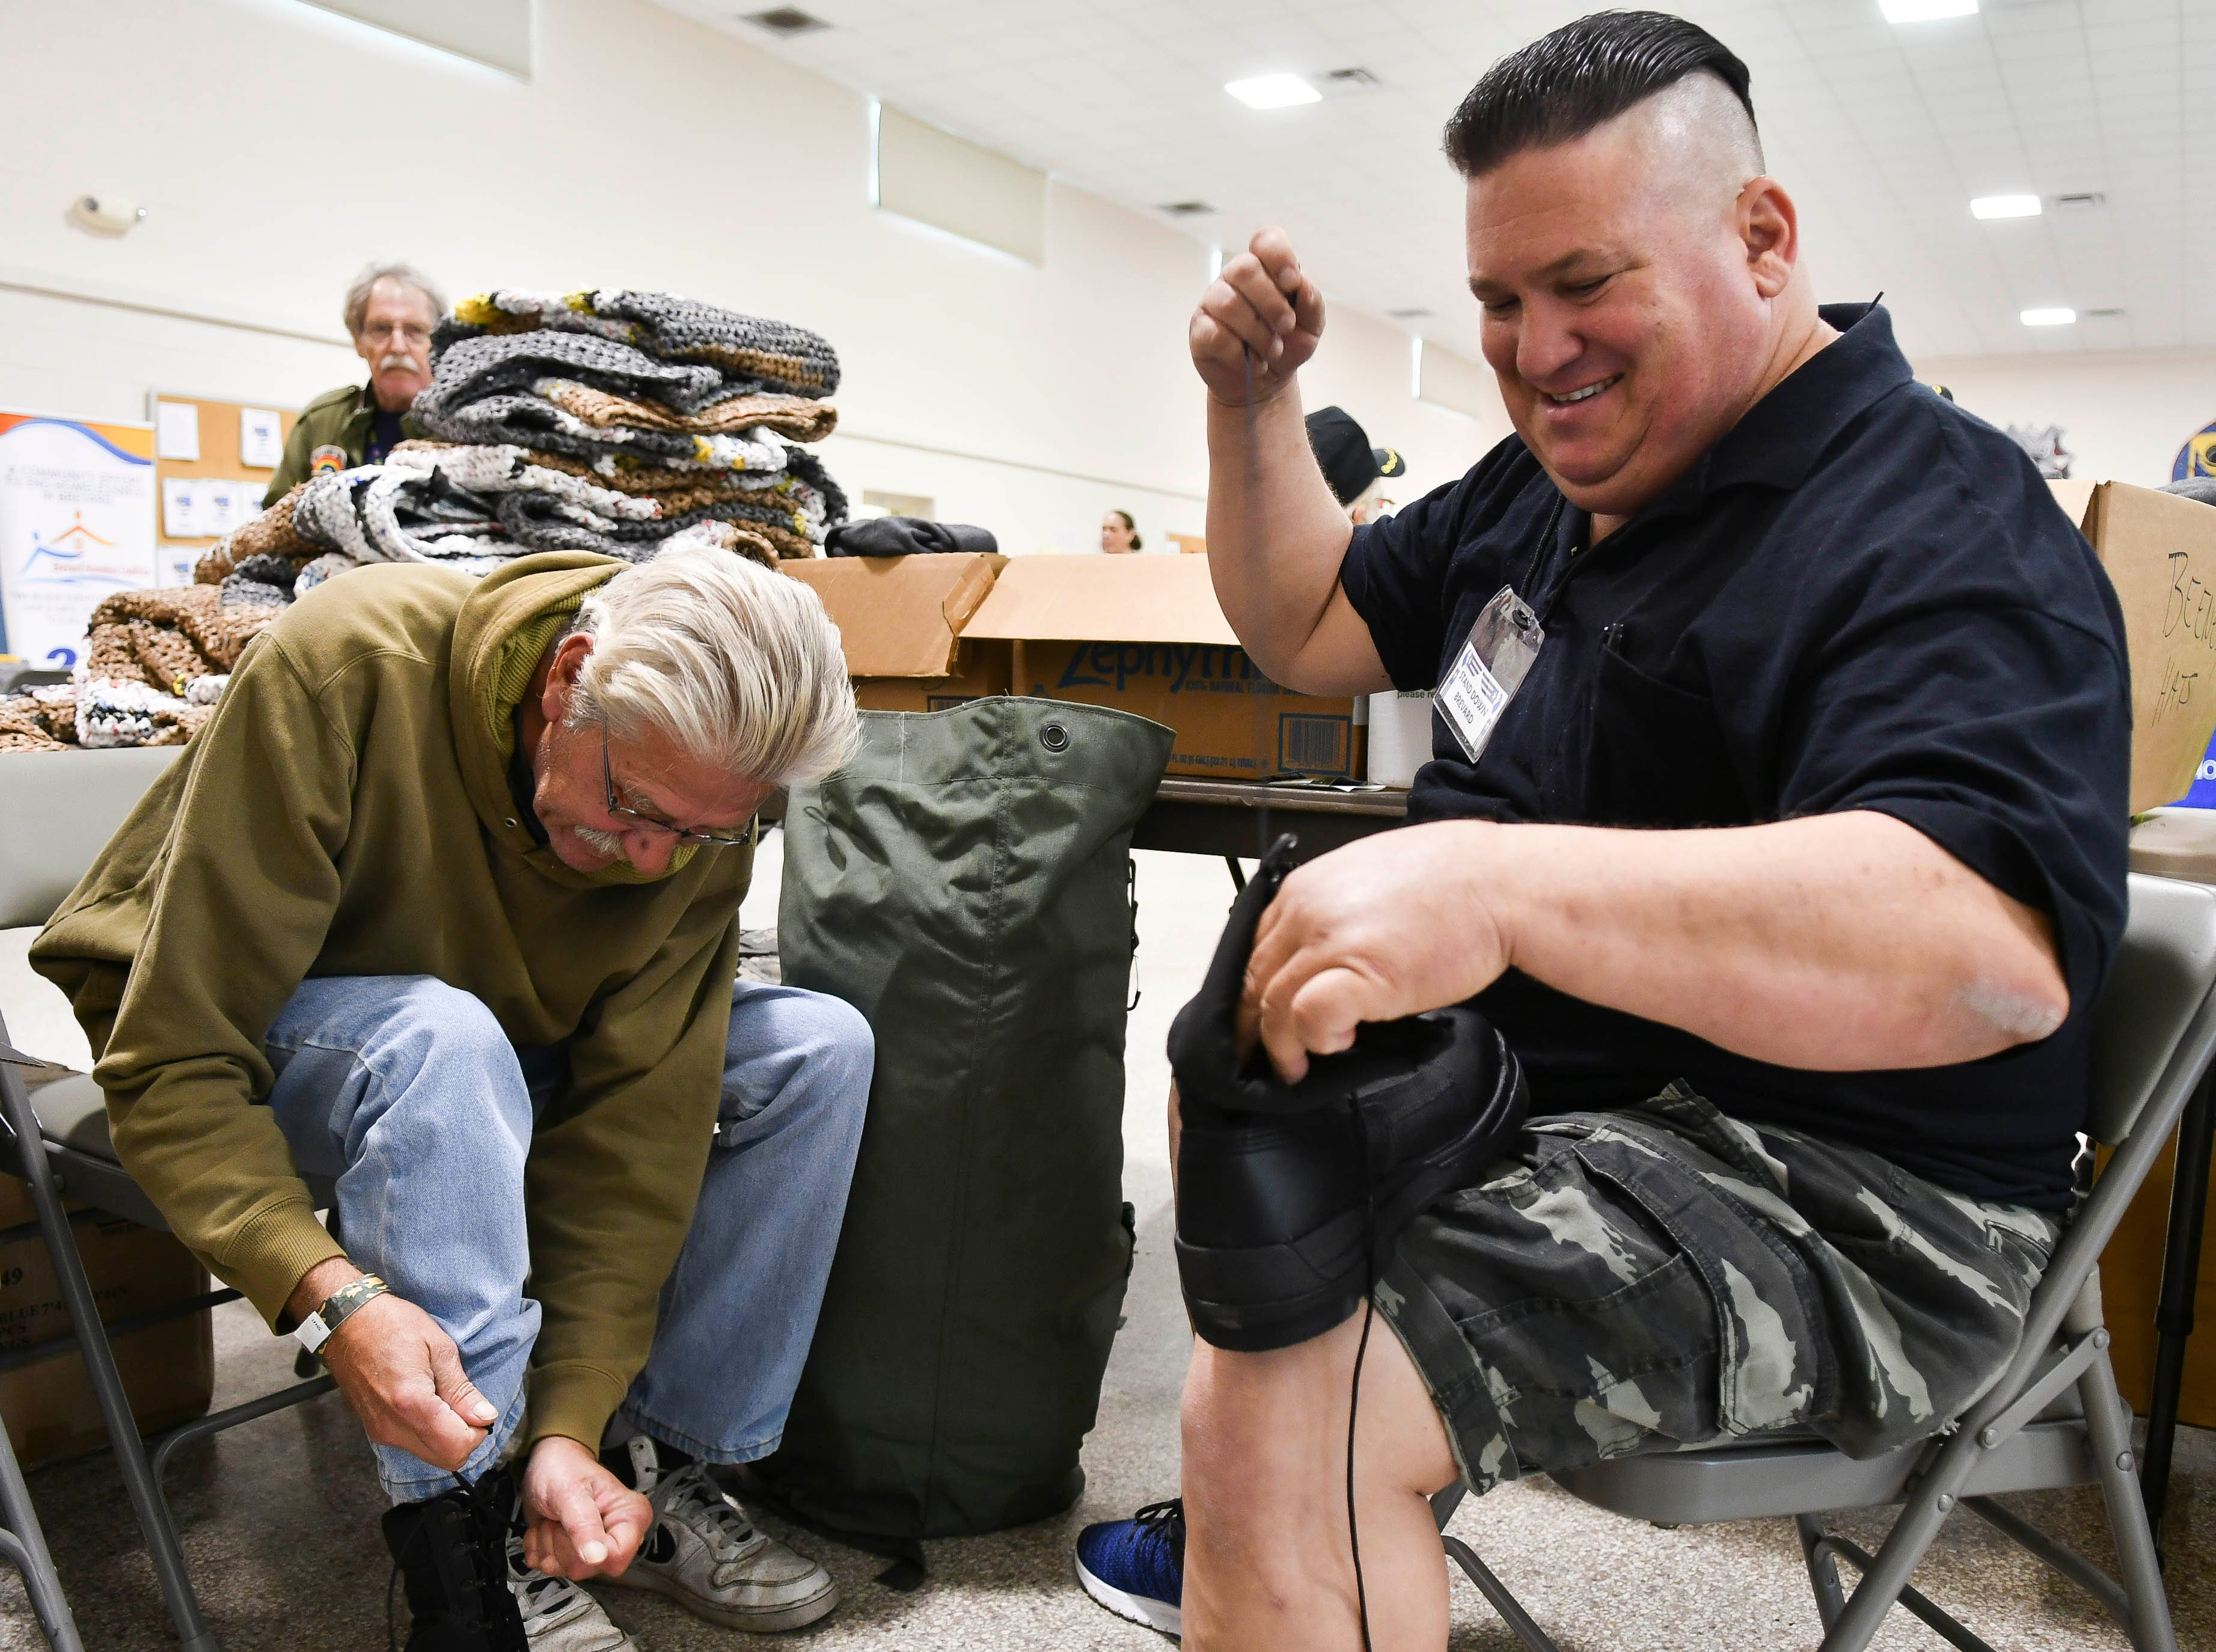 Ronnie Sathre II laces a pair of boots for Ray Bartels to try on during Saturday's Stand Down for Veterans at Cocoa Armory.